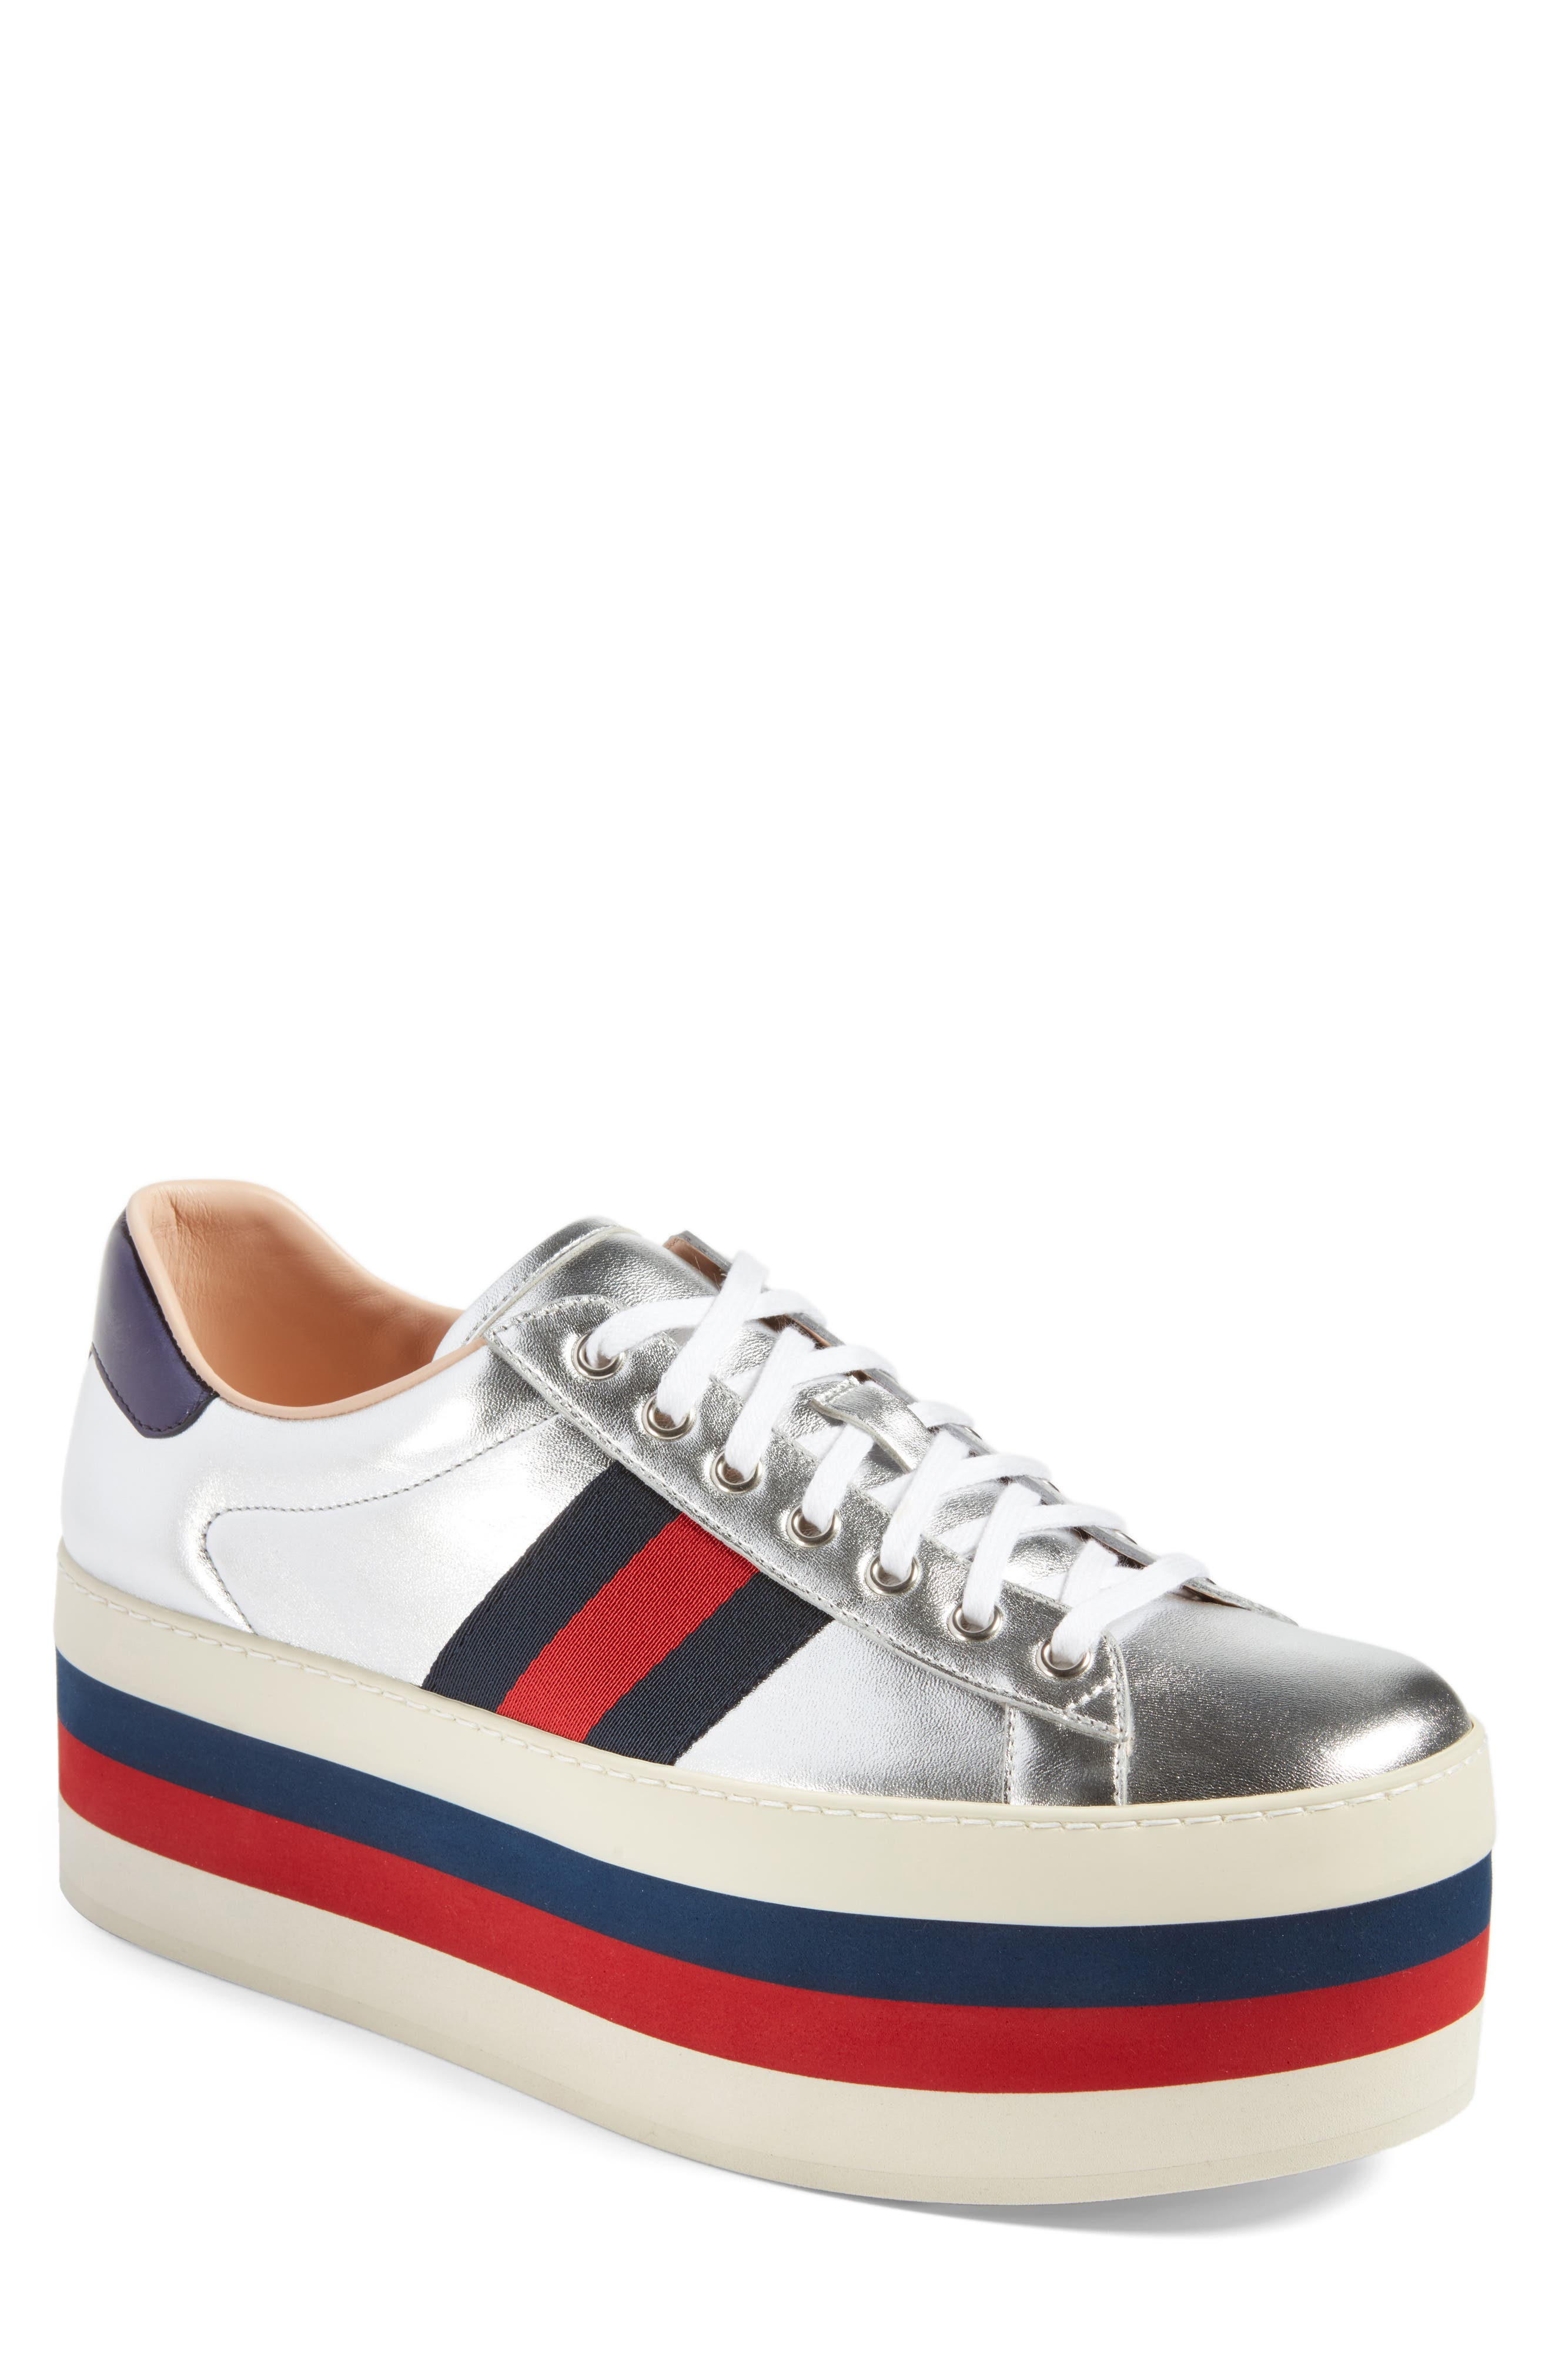 New Ace Platform Sneaker,                             Main thumbnail 1, color,                             Silver Multi